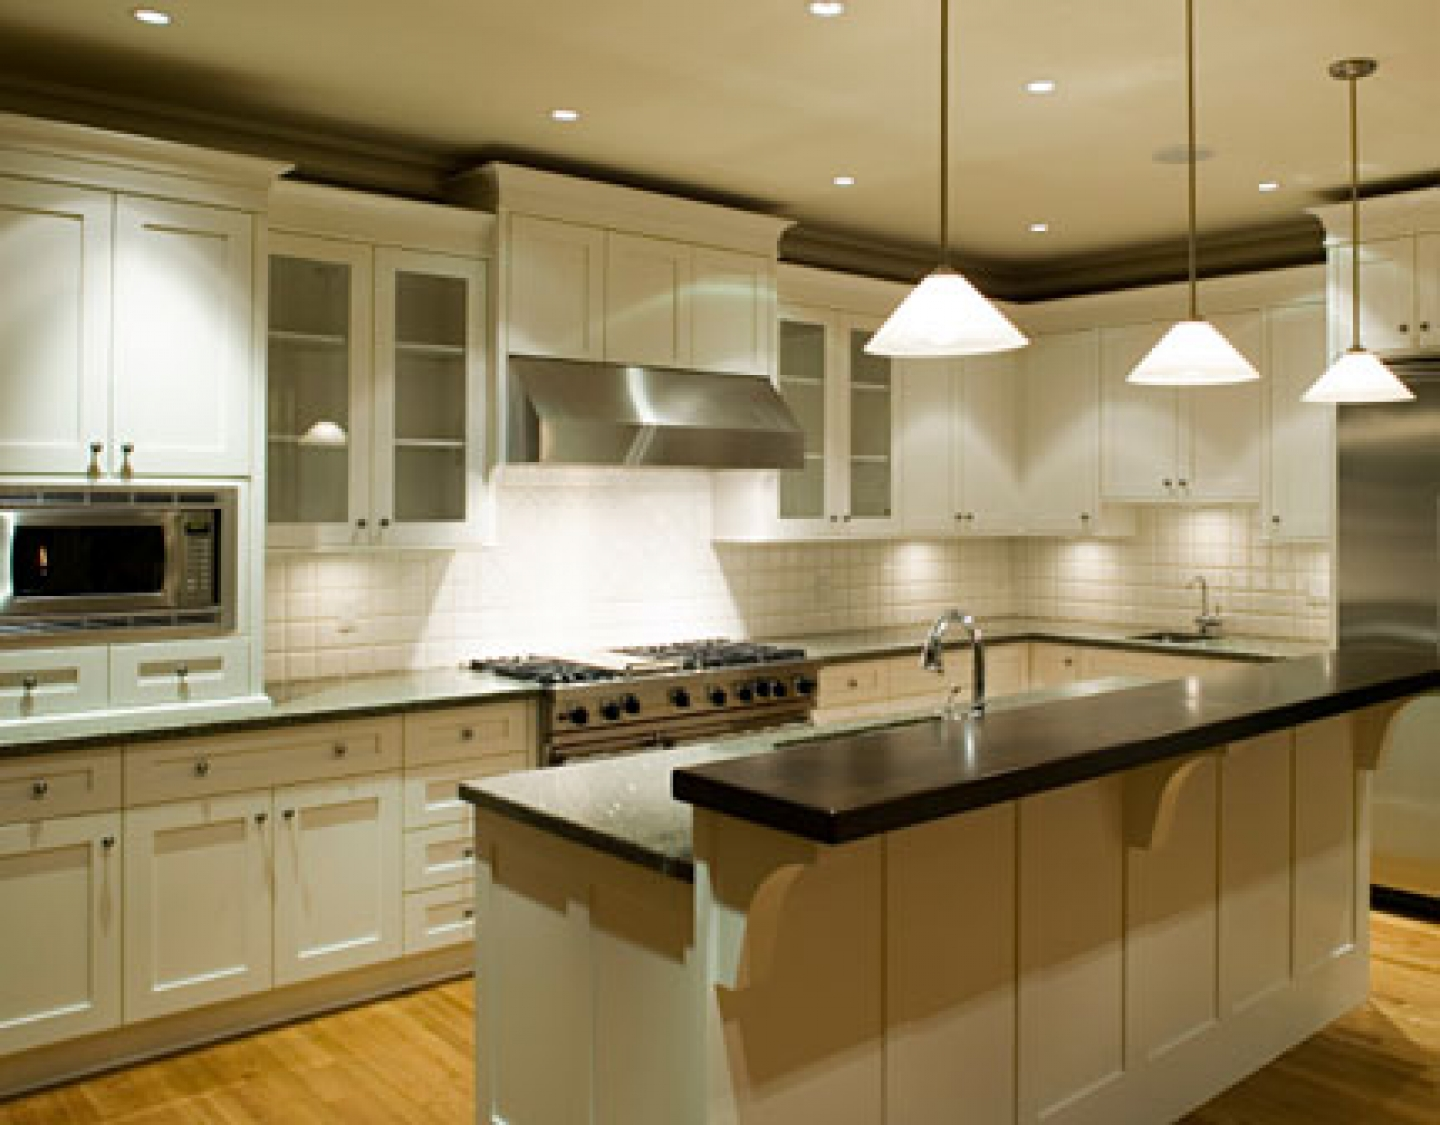 White kitchen cabinets stylize your house cabinets direct Kitchen design ideas remodels photos